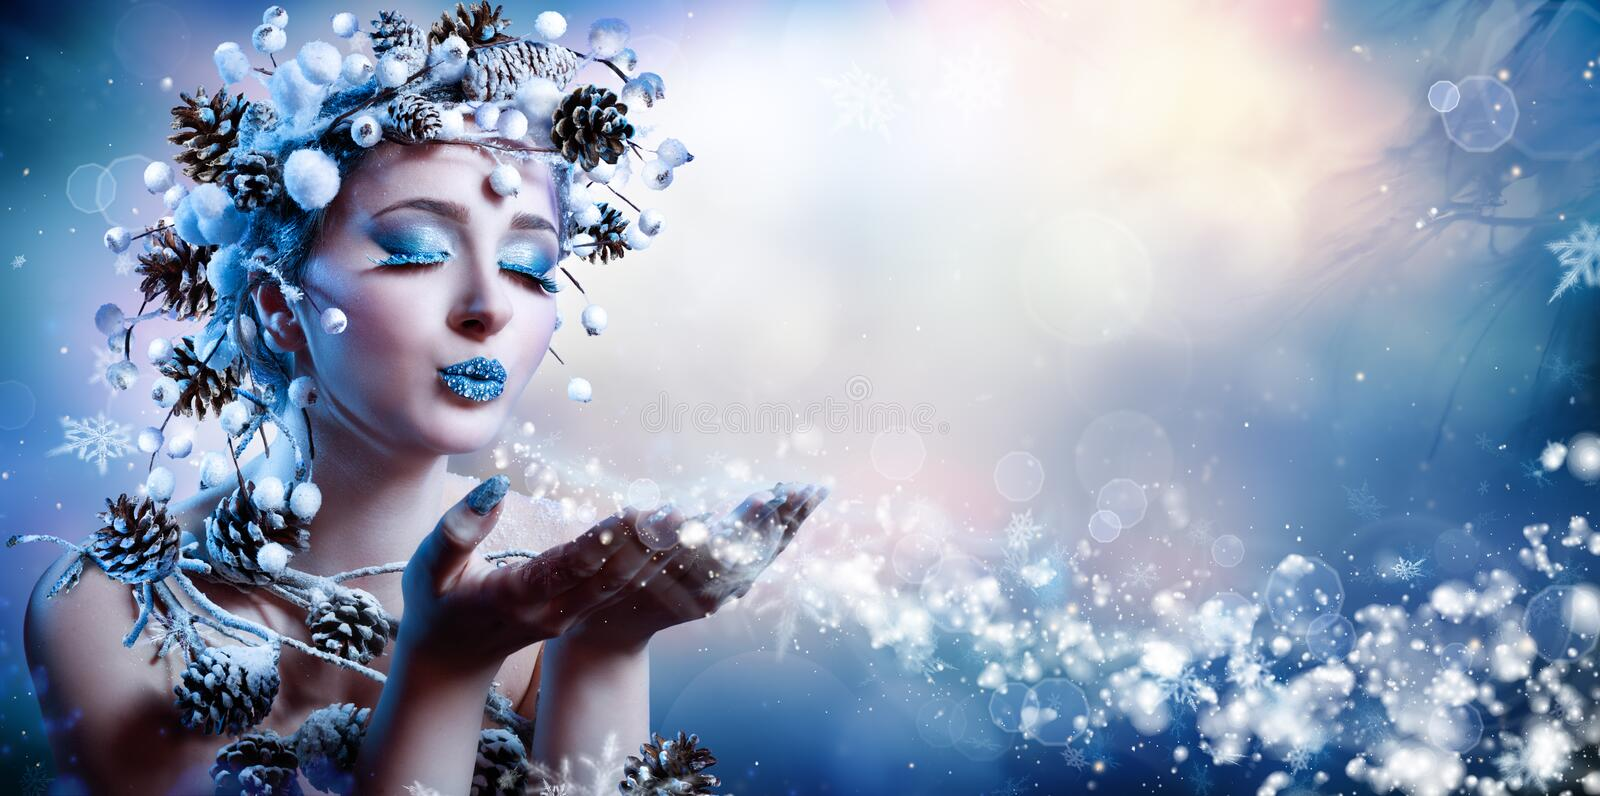 Winter Wish - Model Fashion. Blowing Snowflakes royalty free stock image